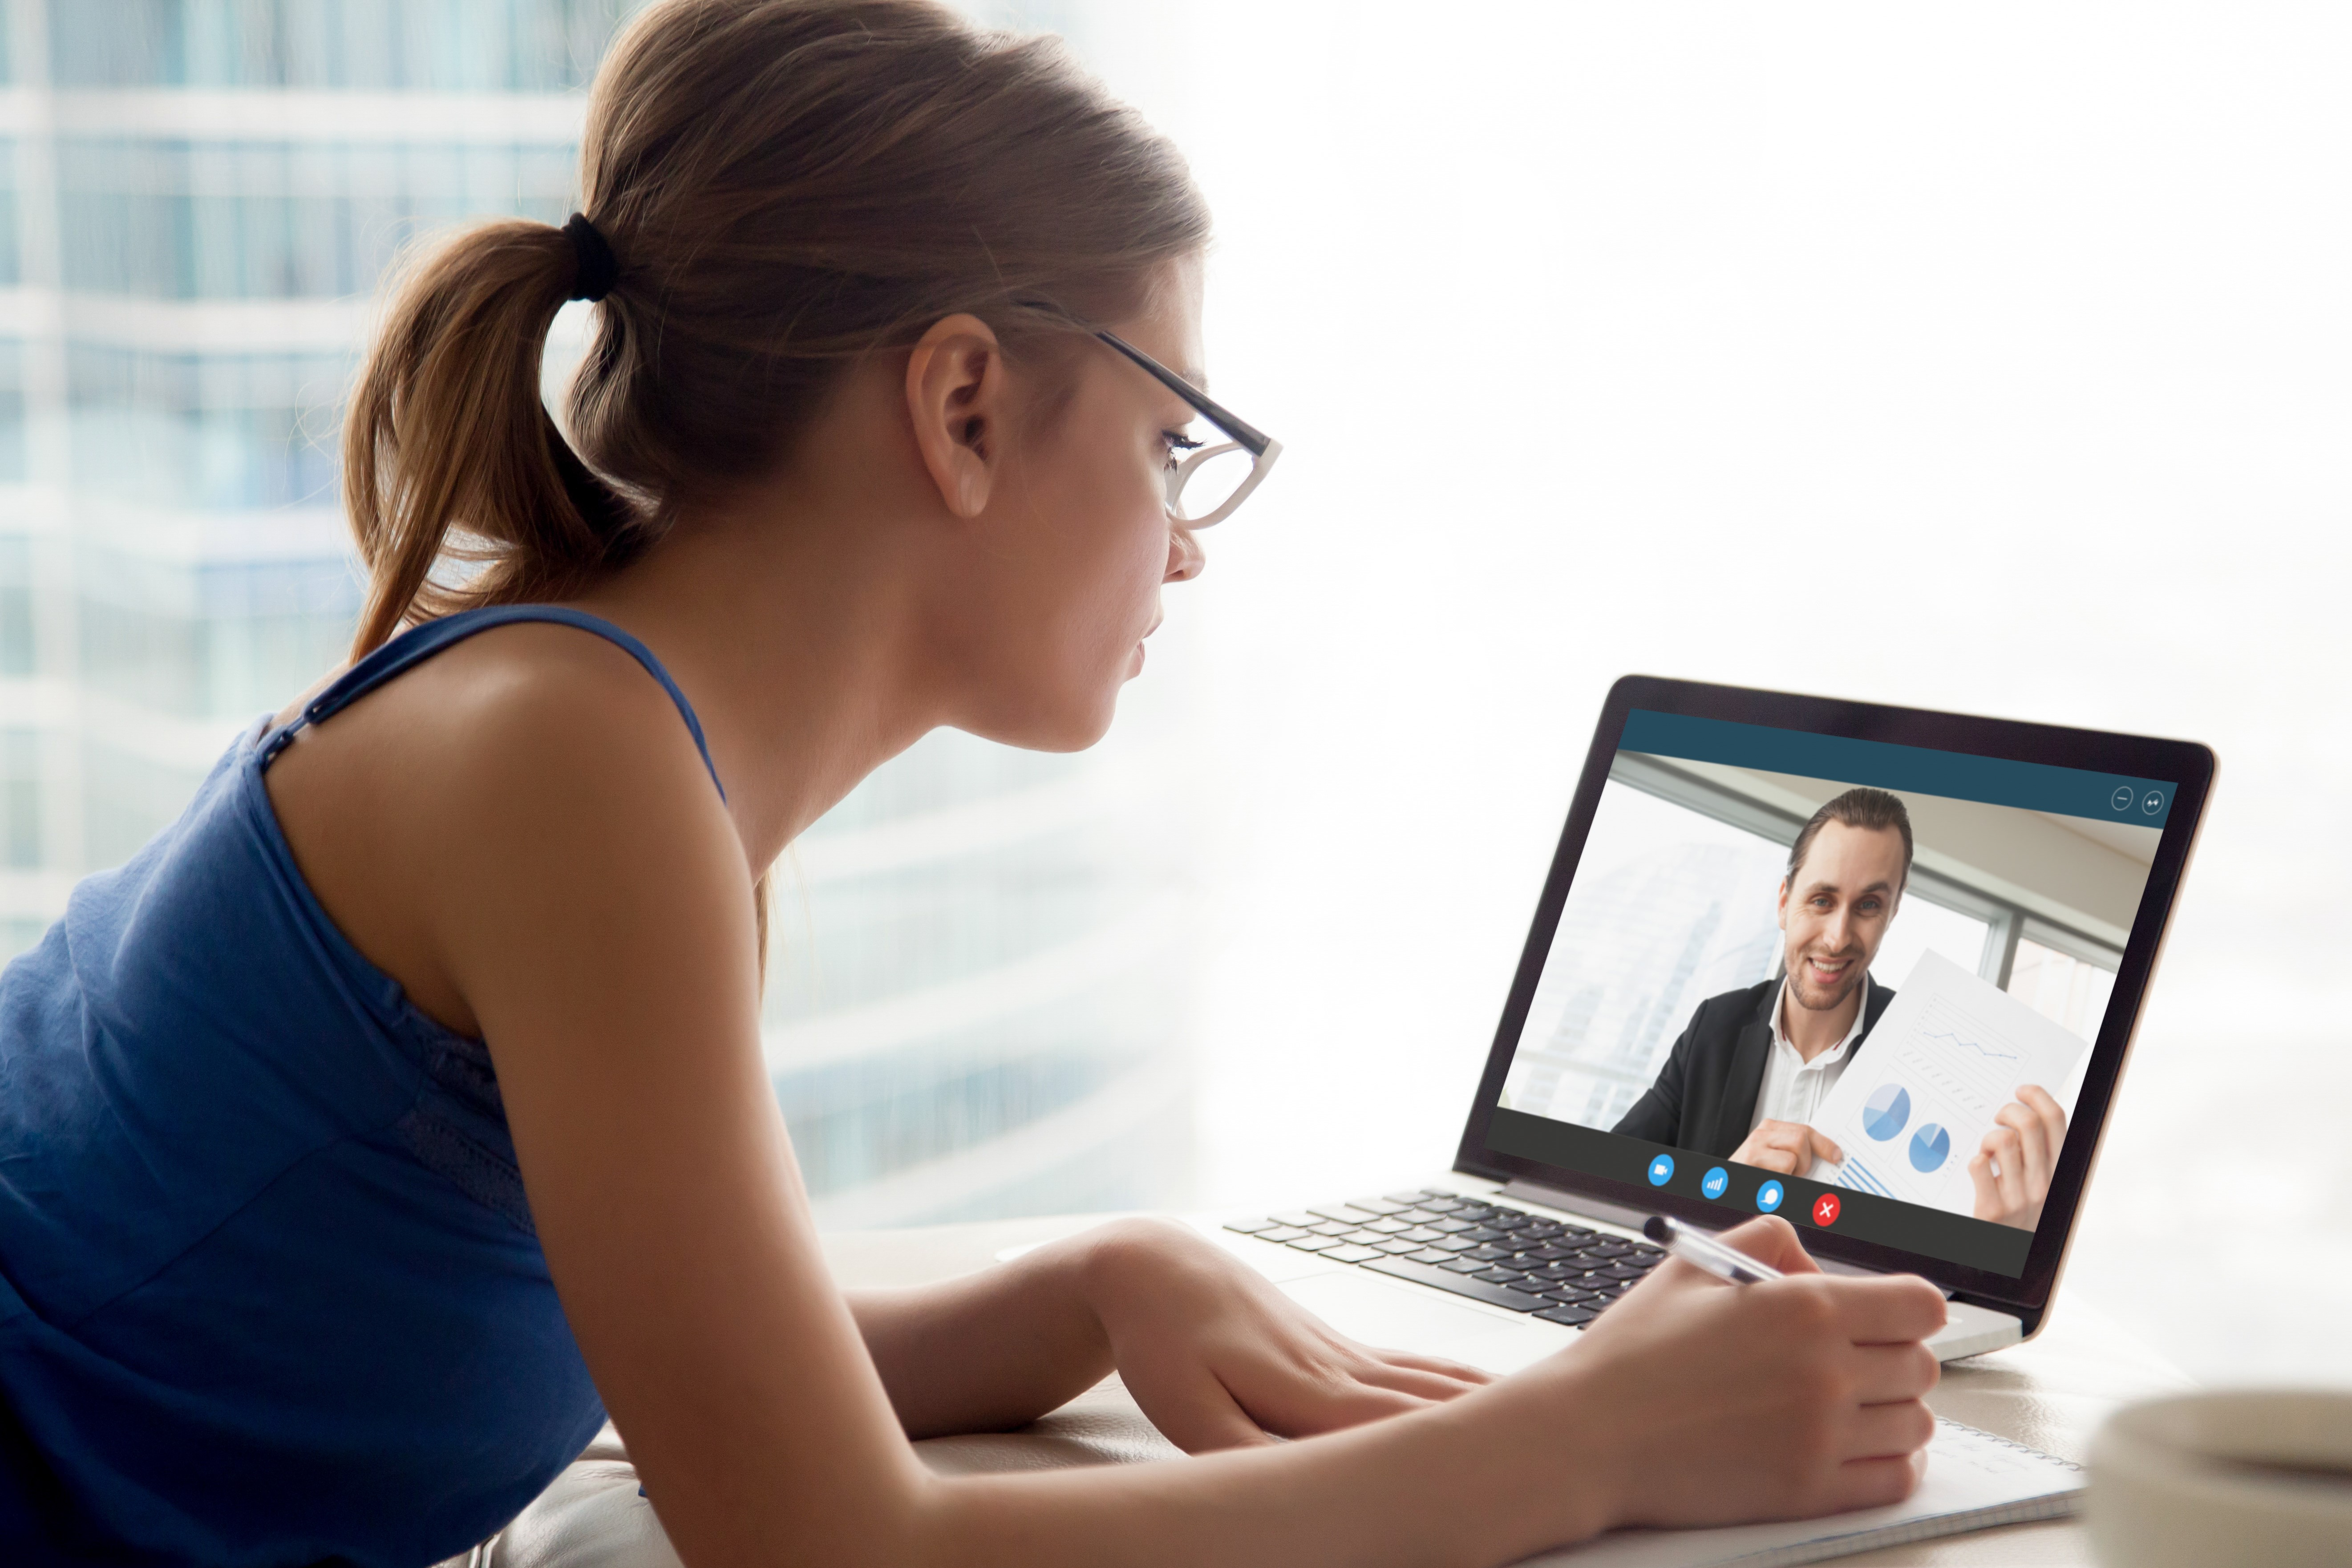 Tips for smashing your virtual interview